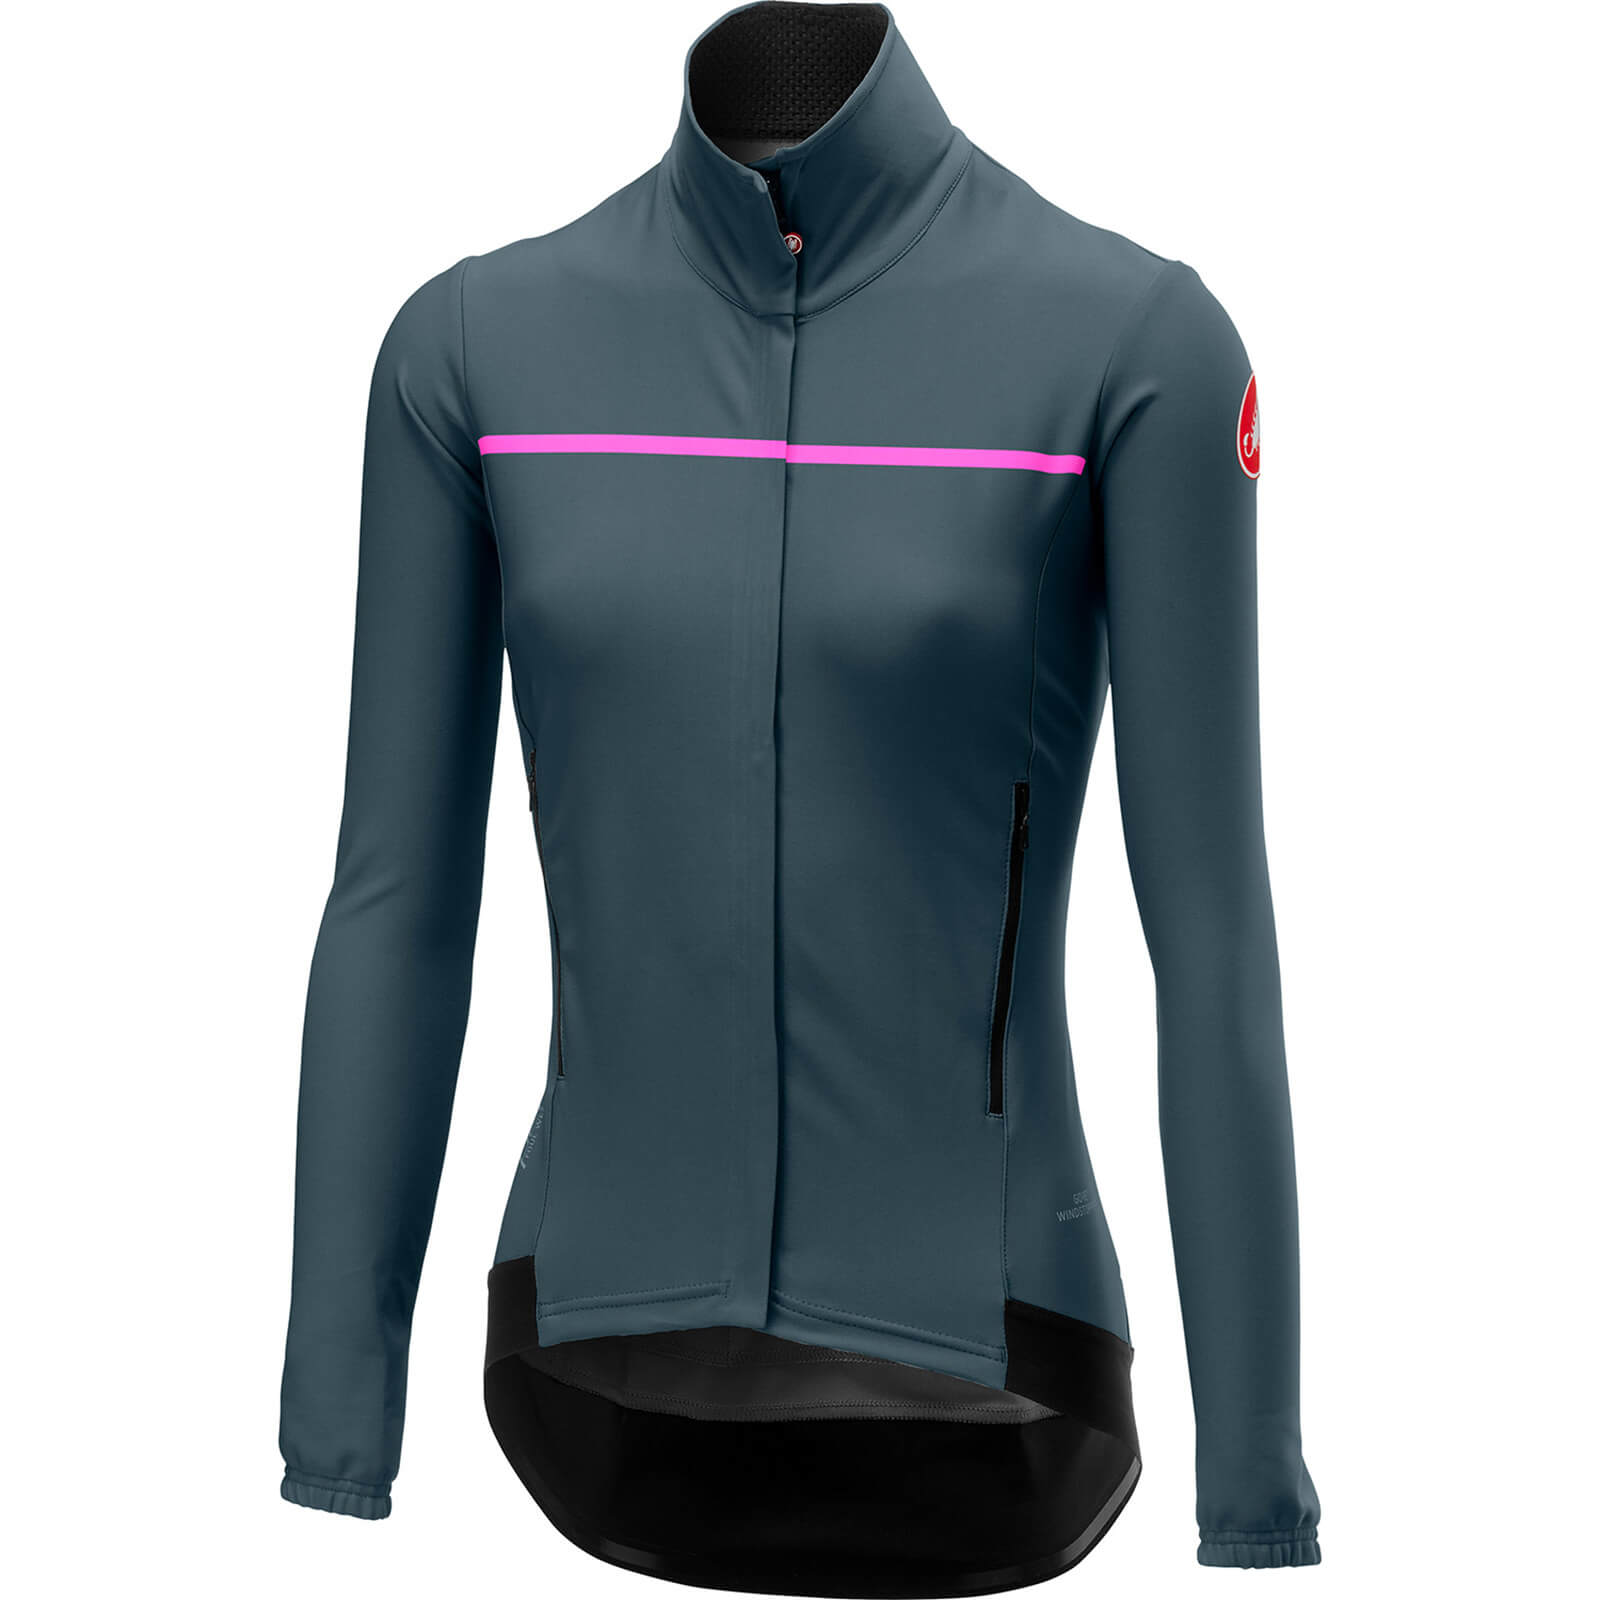 Castelli Limited Edition Women s Limited Edition Perfetto Jersey ... 36c9033f9